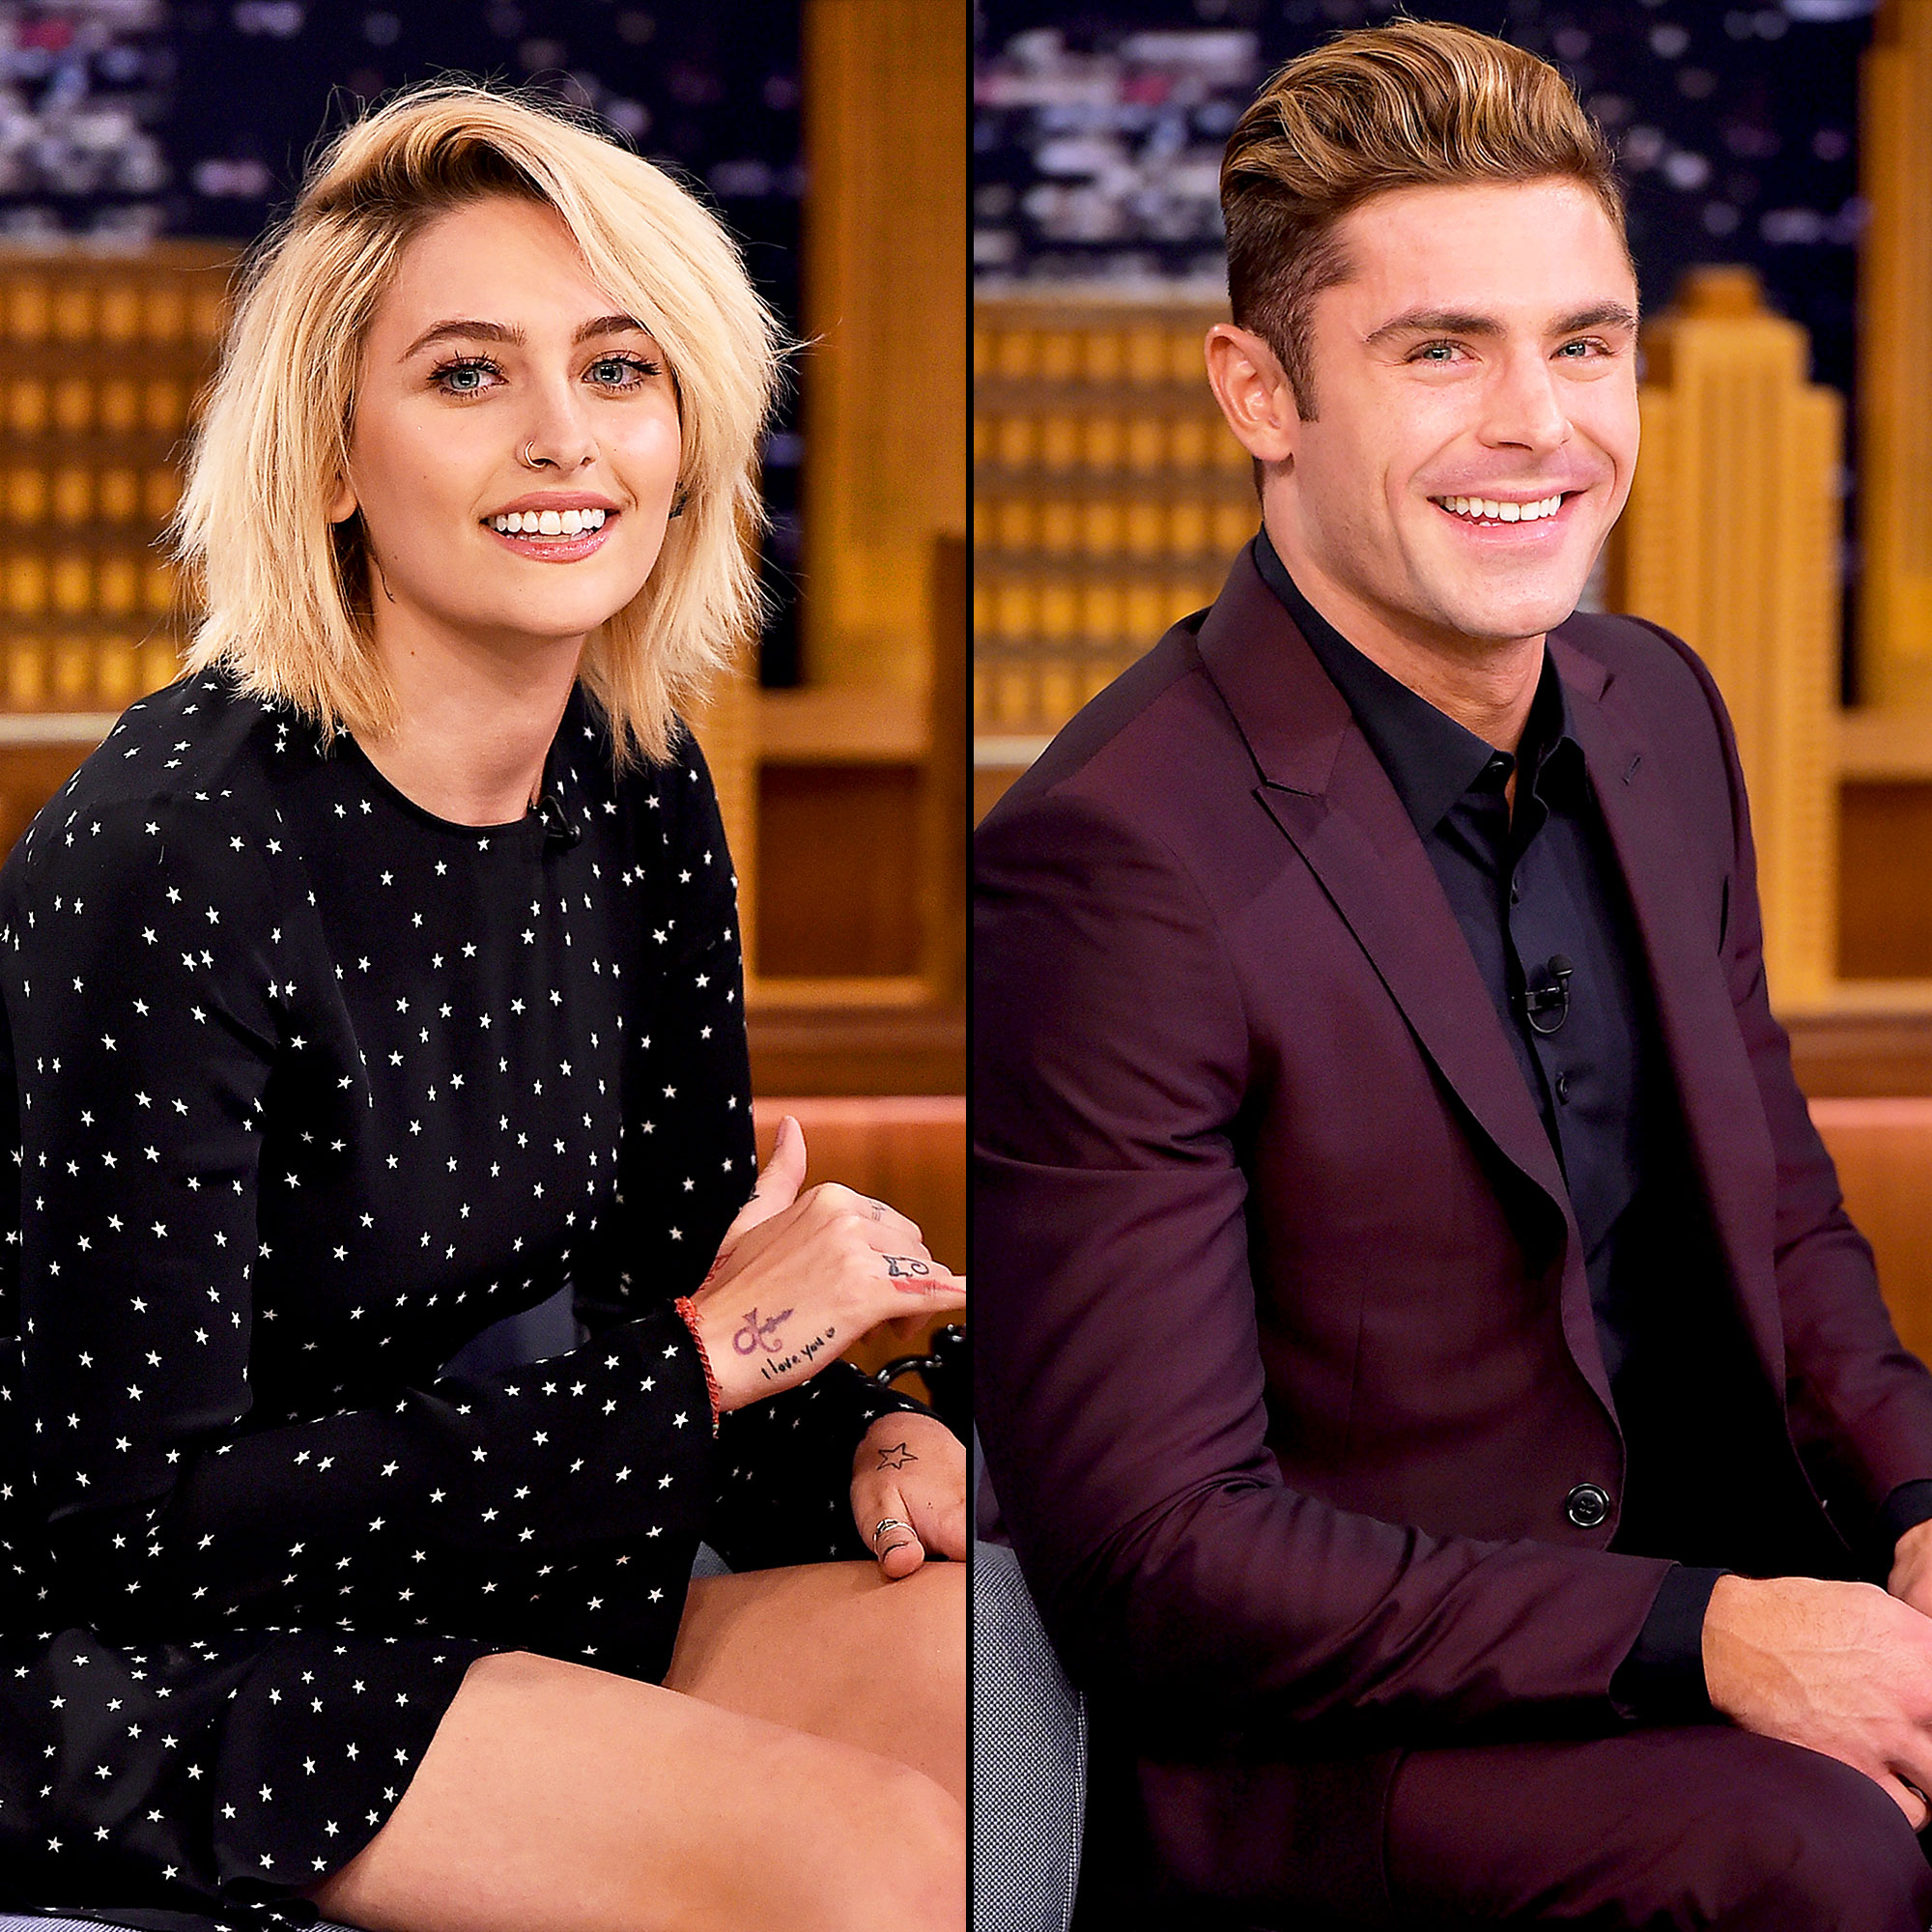 Paris Jackson and Zac Efron